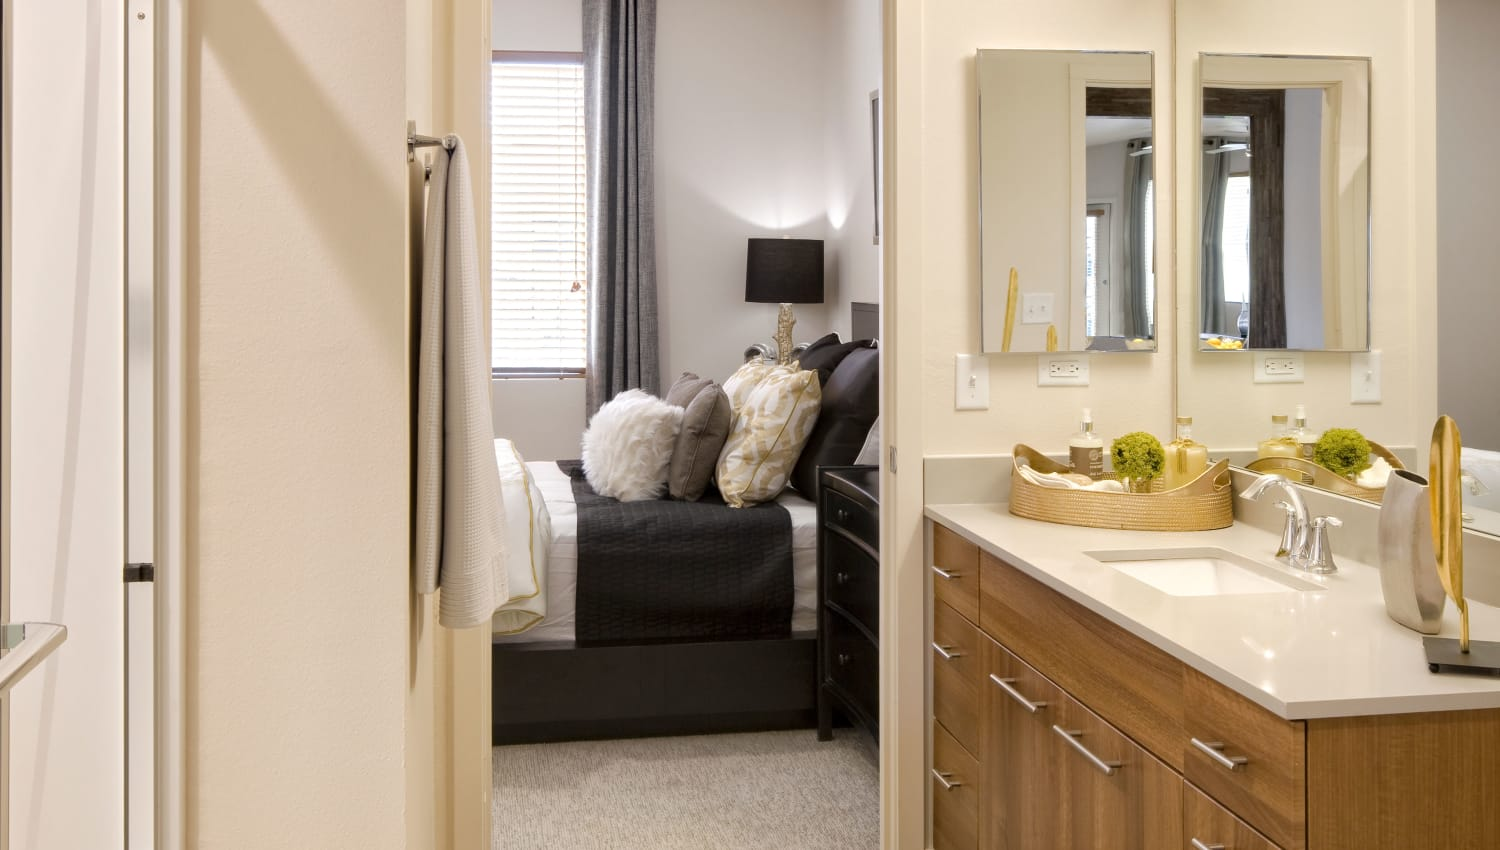 Master bathroom attached to bedroom at Olympus Alameda in Albuquerque, New Mexico